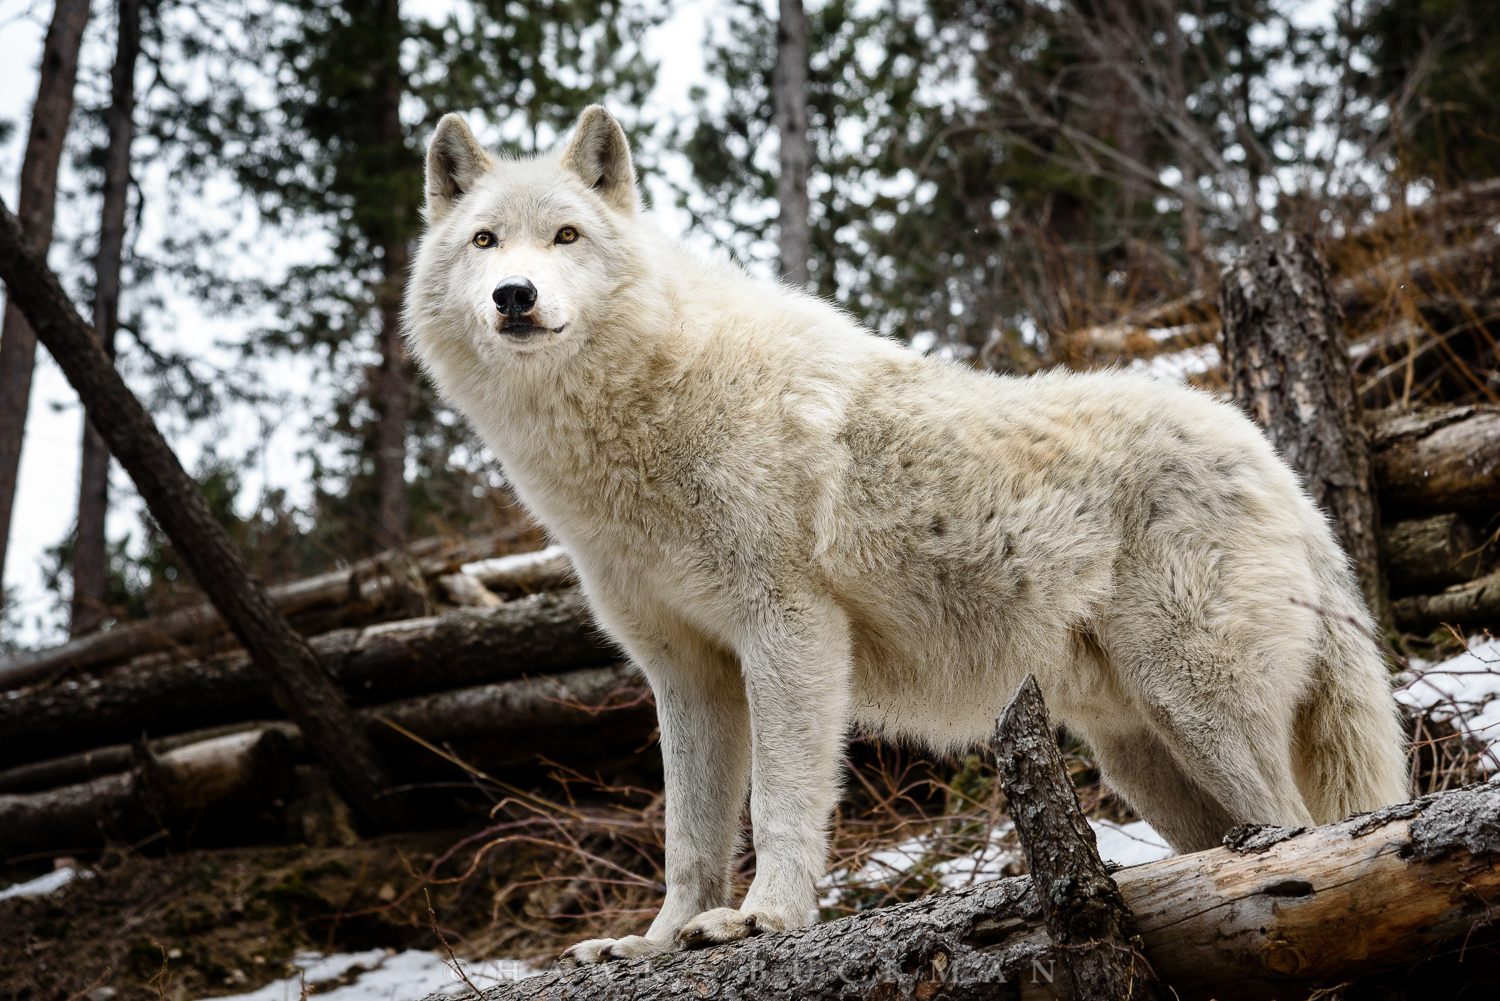 Arctic wolf (Canis lupus arctos) also known as the white wolf or polar wolf, is a subspecies of grey wolf native to Canada's Queen Elizabeth Islands, from Melville Island to Ellesmere Island.